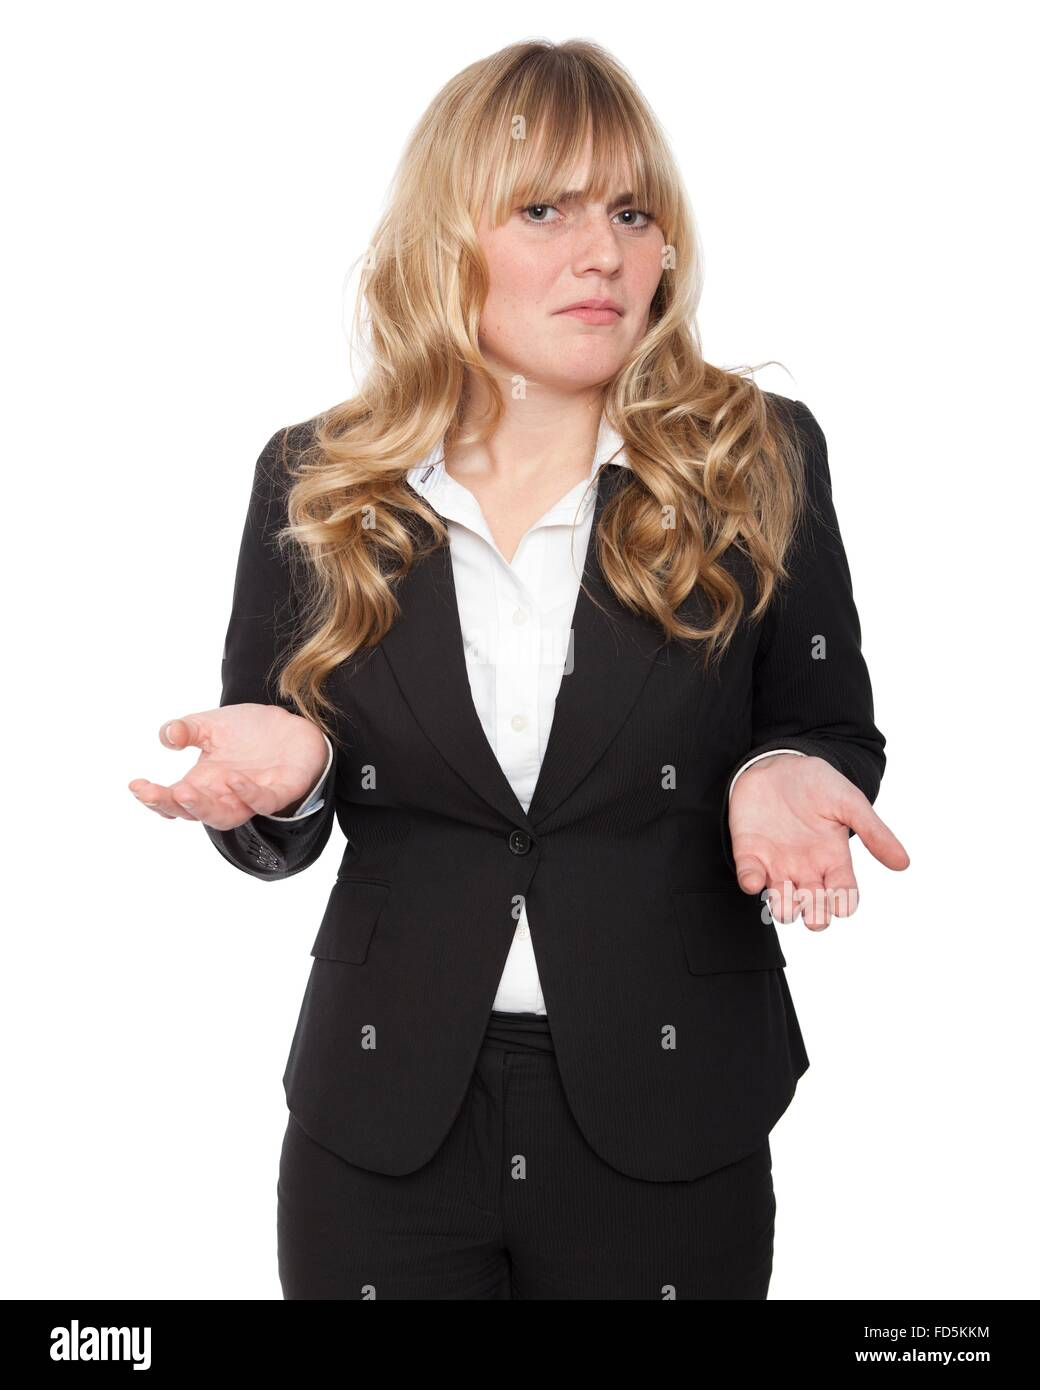 Young businesswoman shrugging her shoulders in ignorance, to show she does not know the answer and could not care. - Stock Image